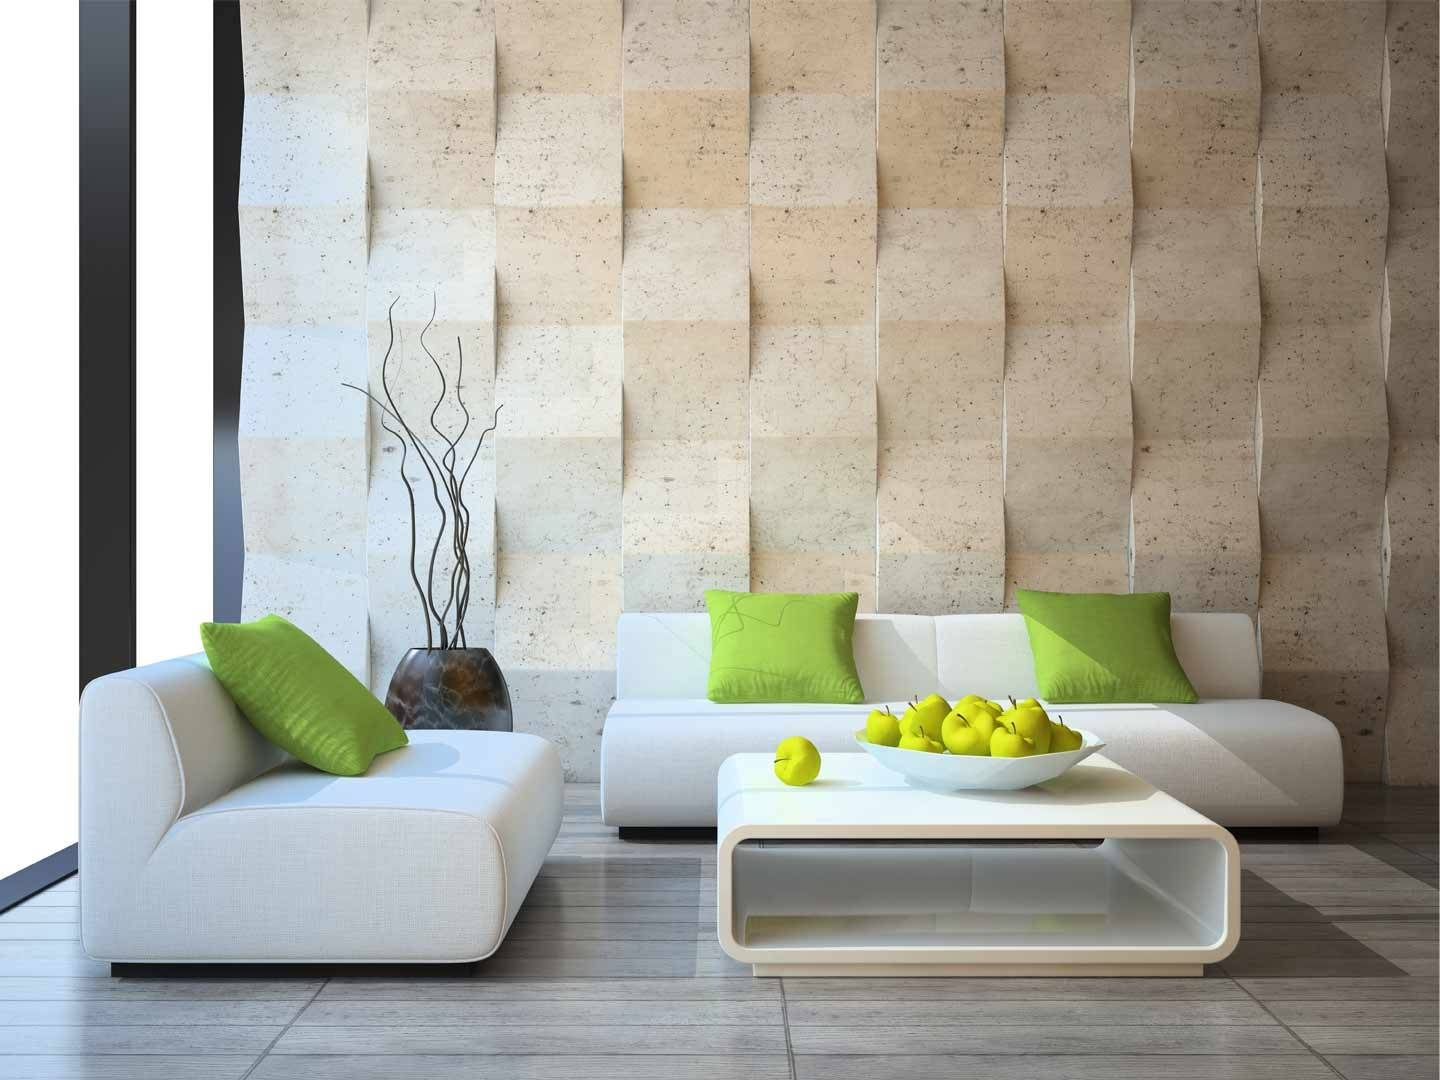 Wall Paneling | 3d Wall Panels | Decorative Wall Panels | Textured Inside Most Recent 3d Wall Covering Panels (View 3 of 20)